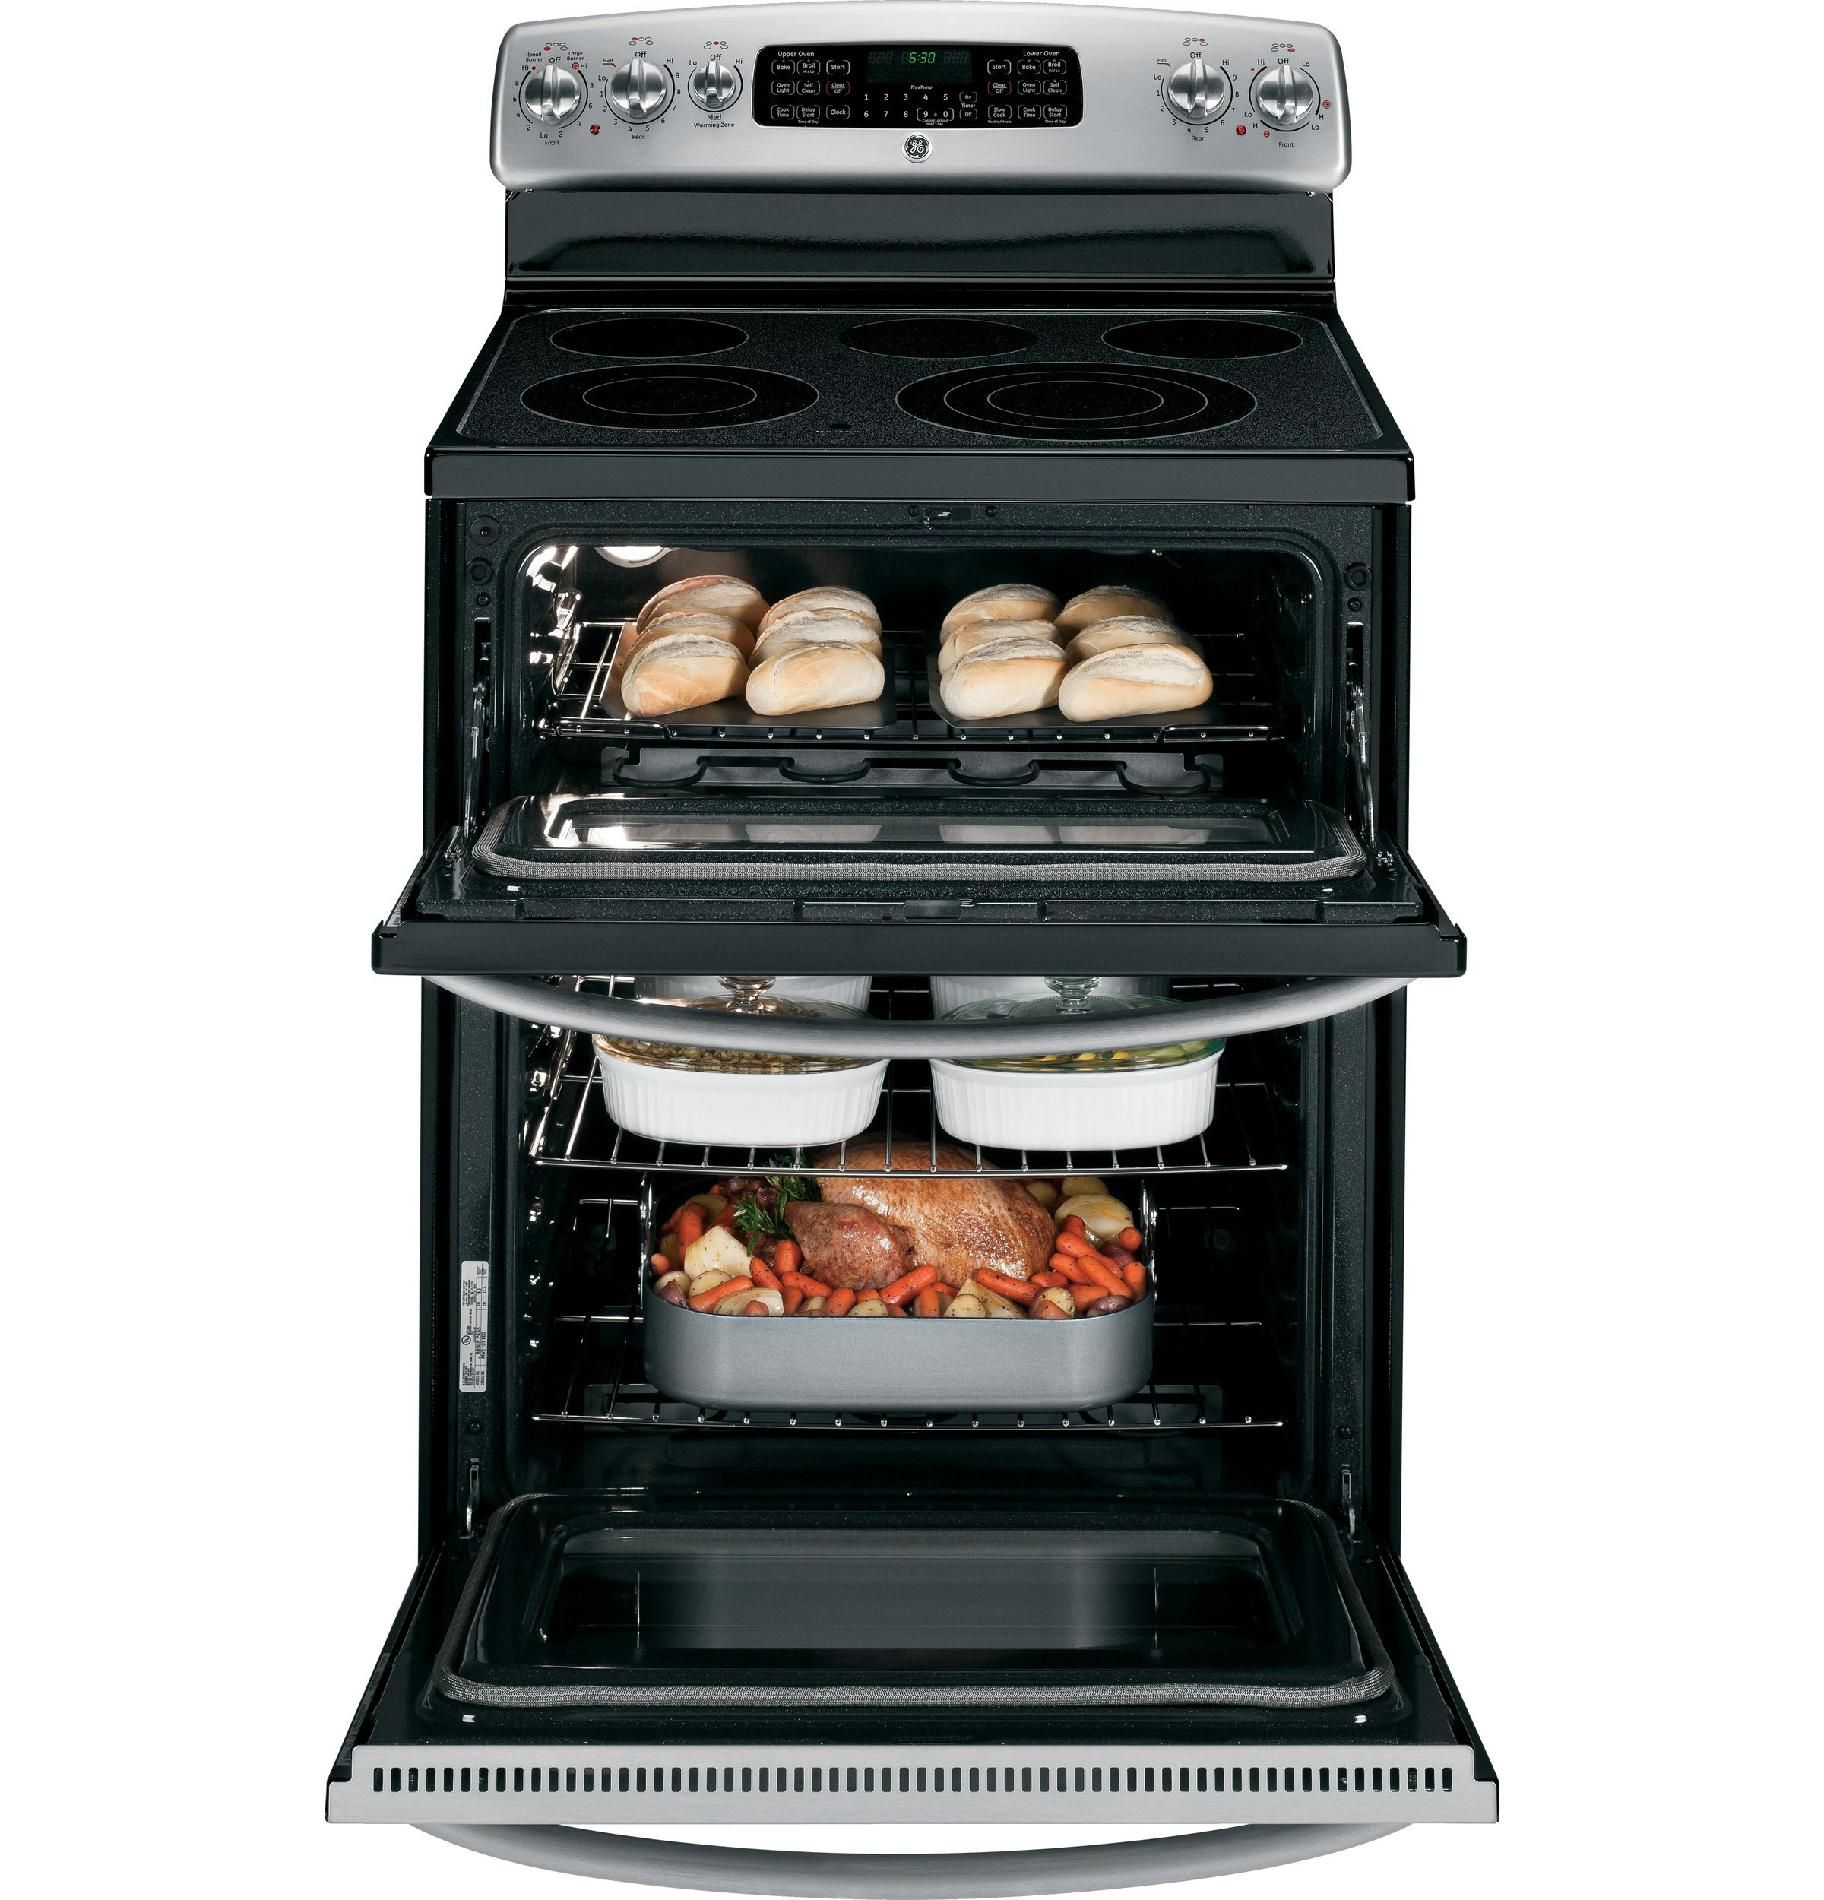 GE 4.2 cu. ft. Electric Range w/ Double-Oven - Stainless Steel